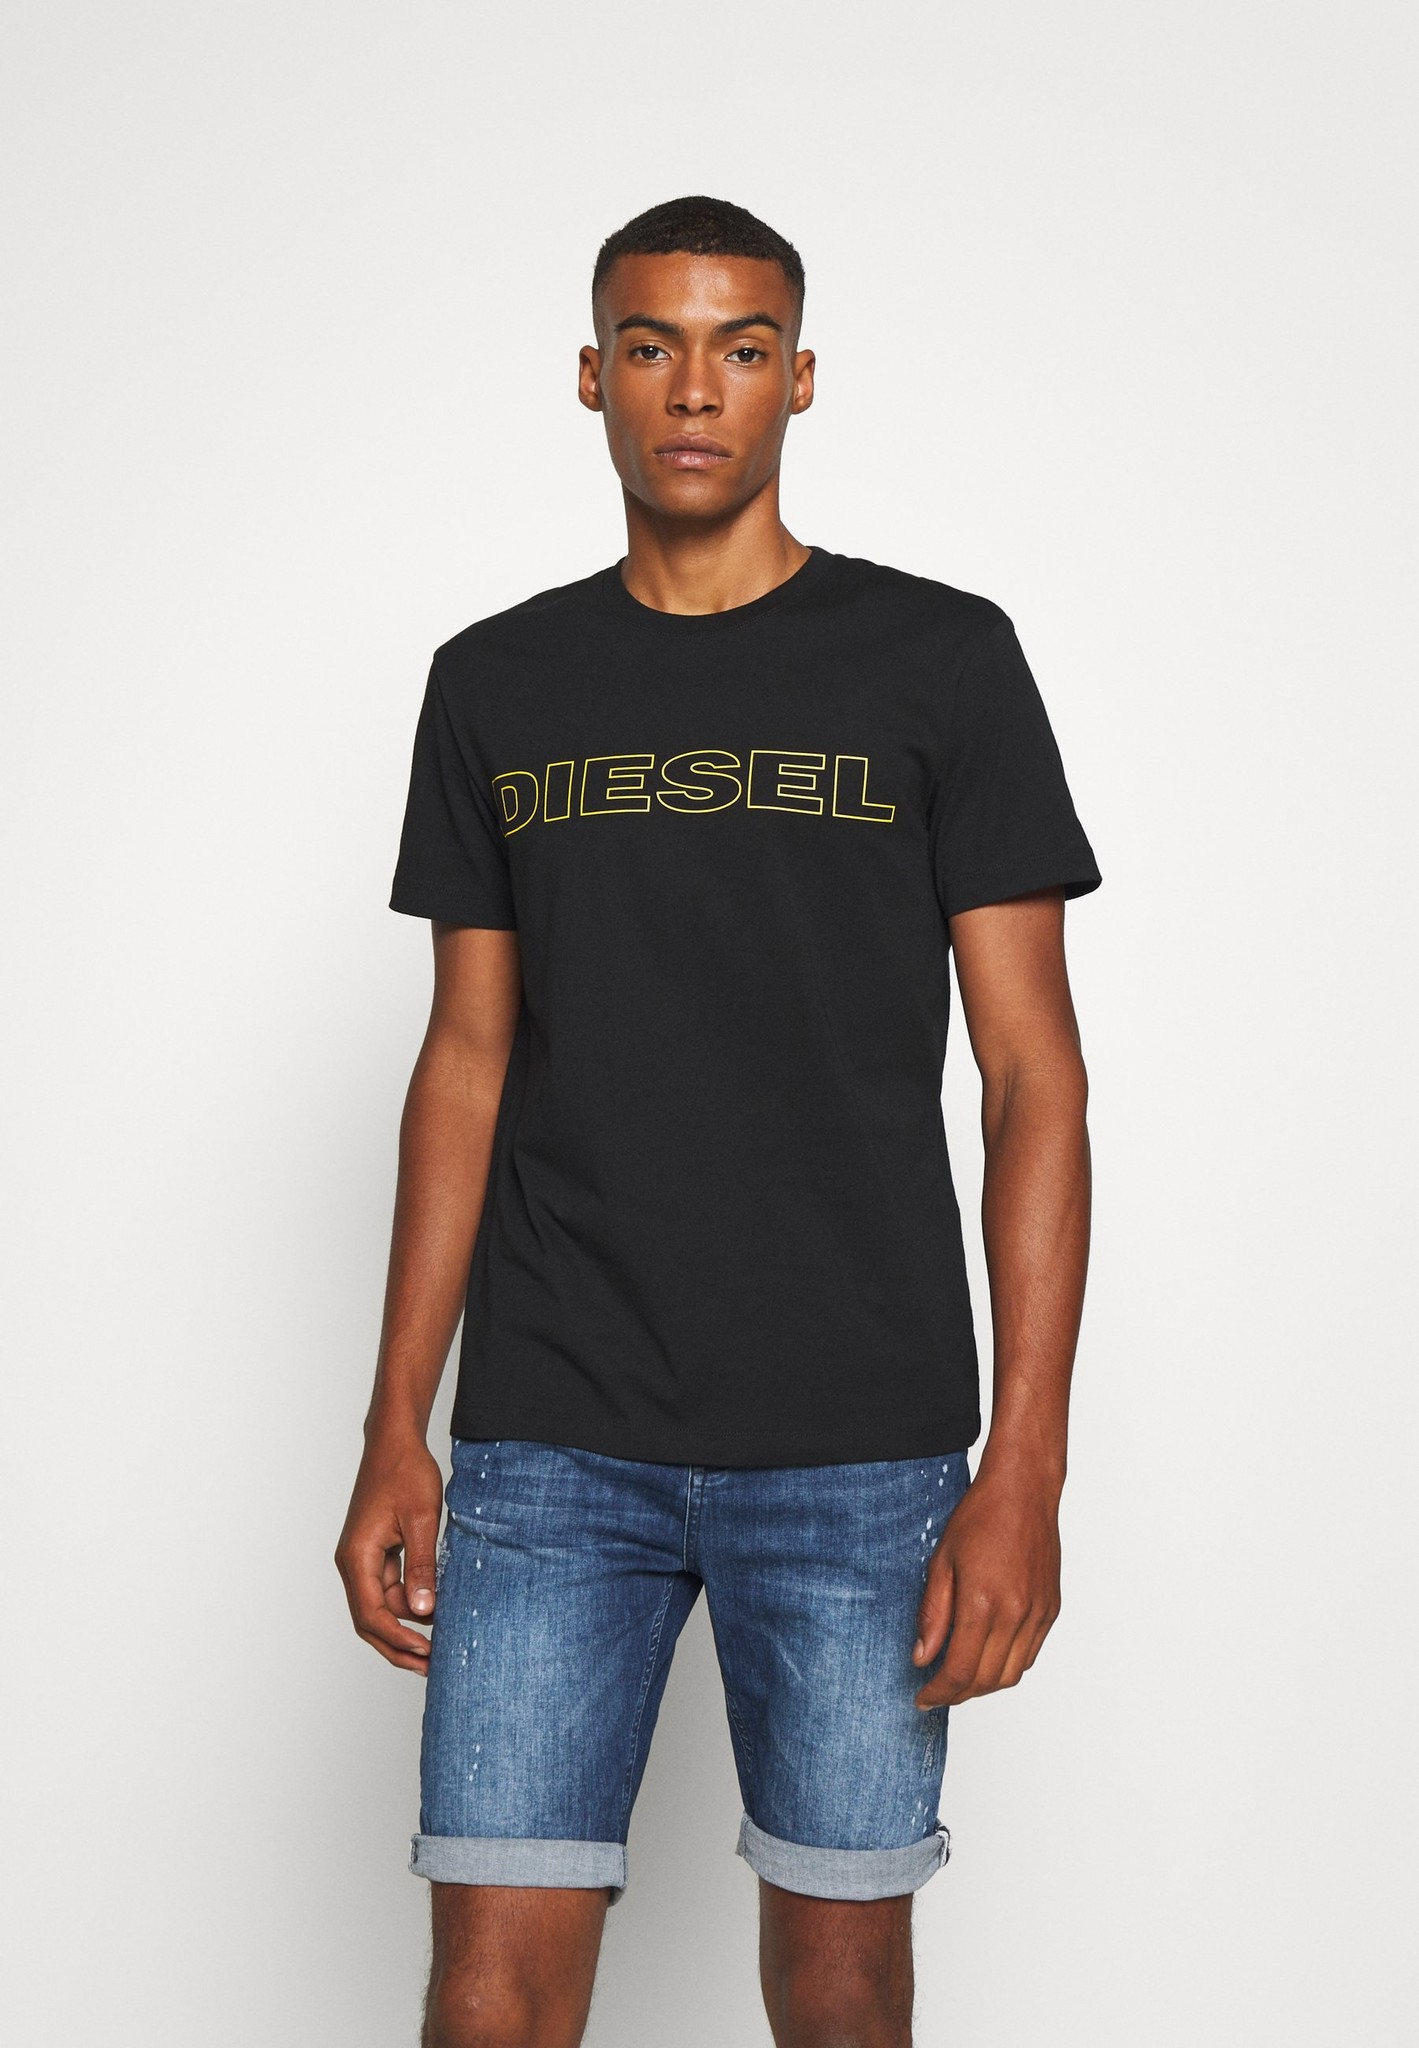 DIESEL DIESEL T-SHIRT UMLT JAKE - BLACK/YELLOW